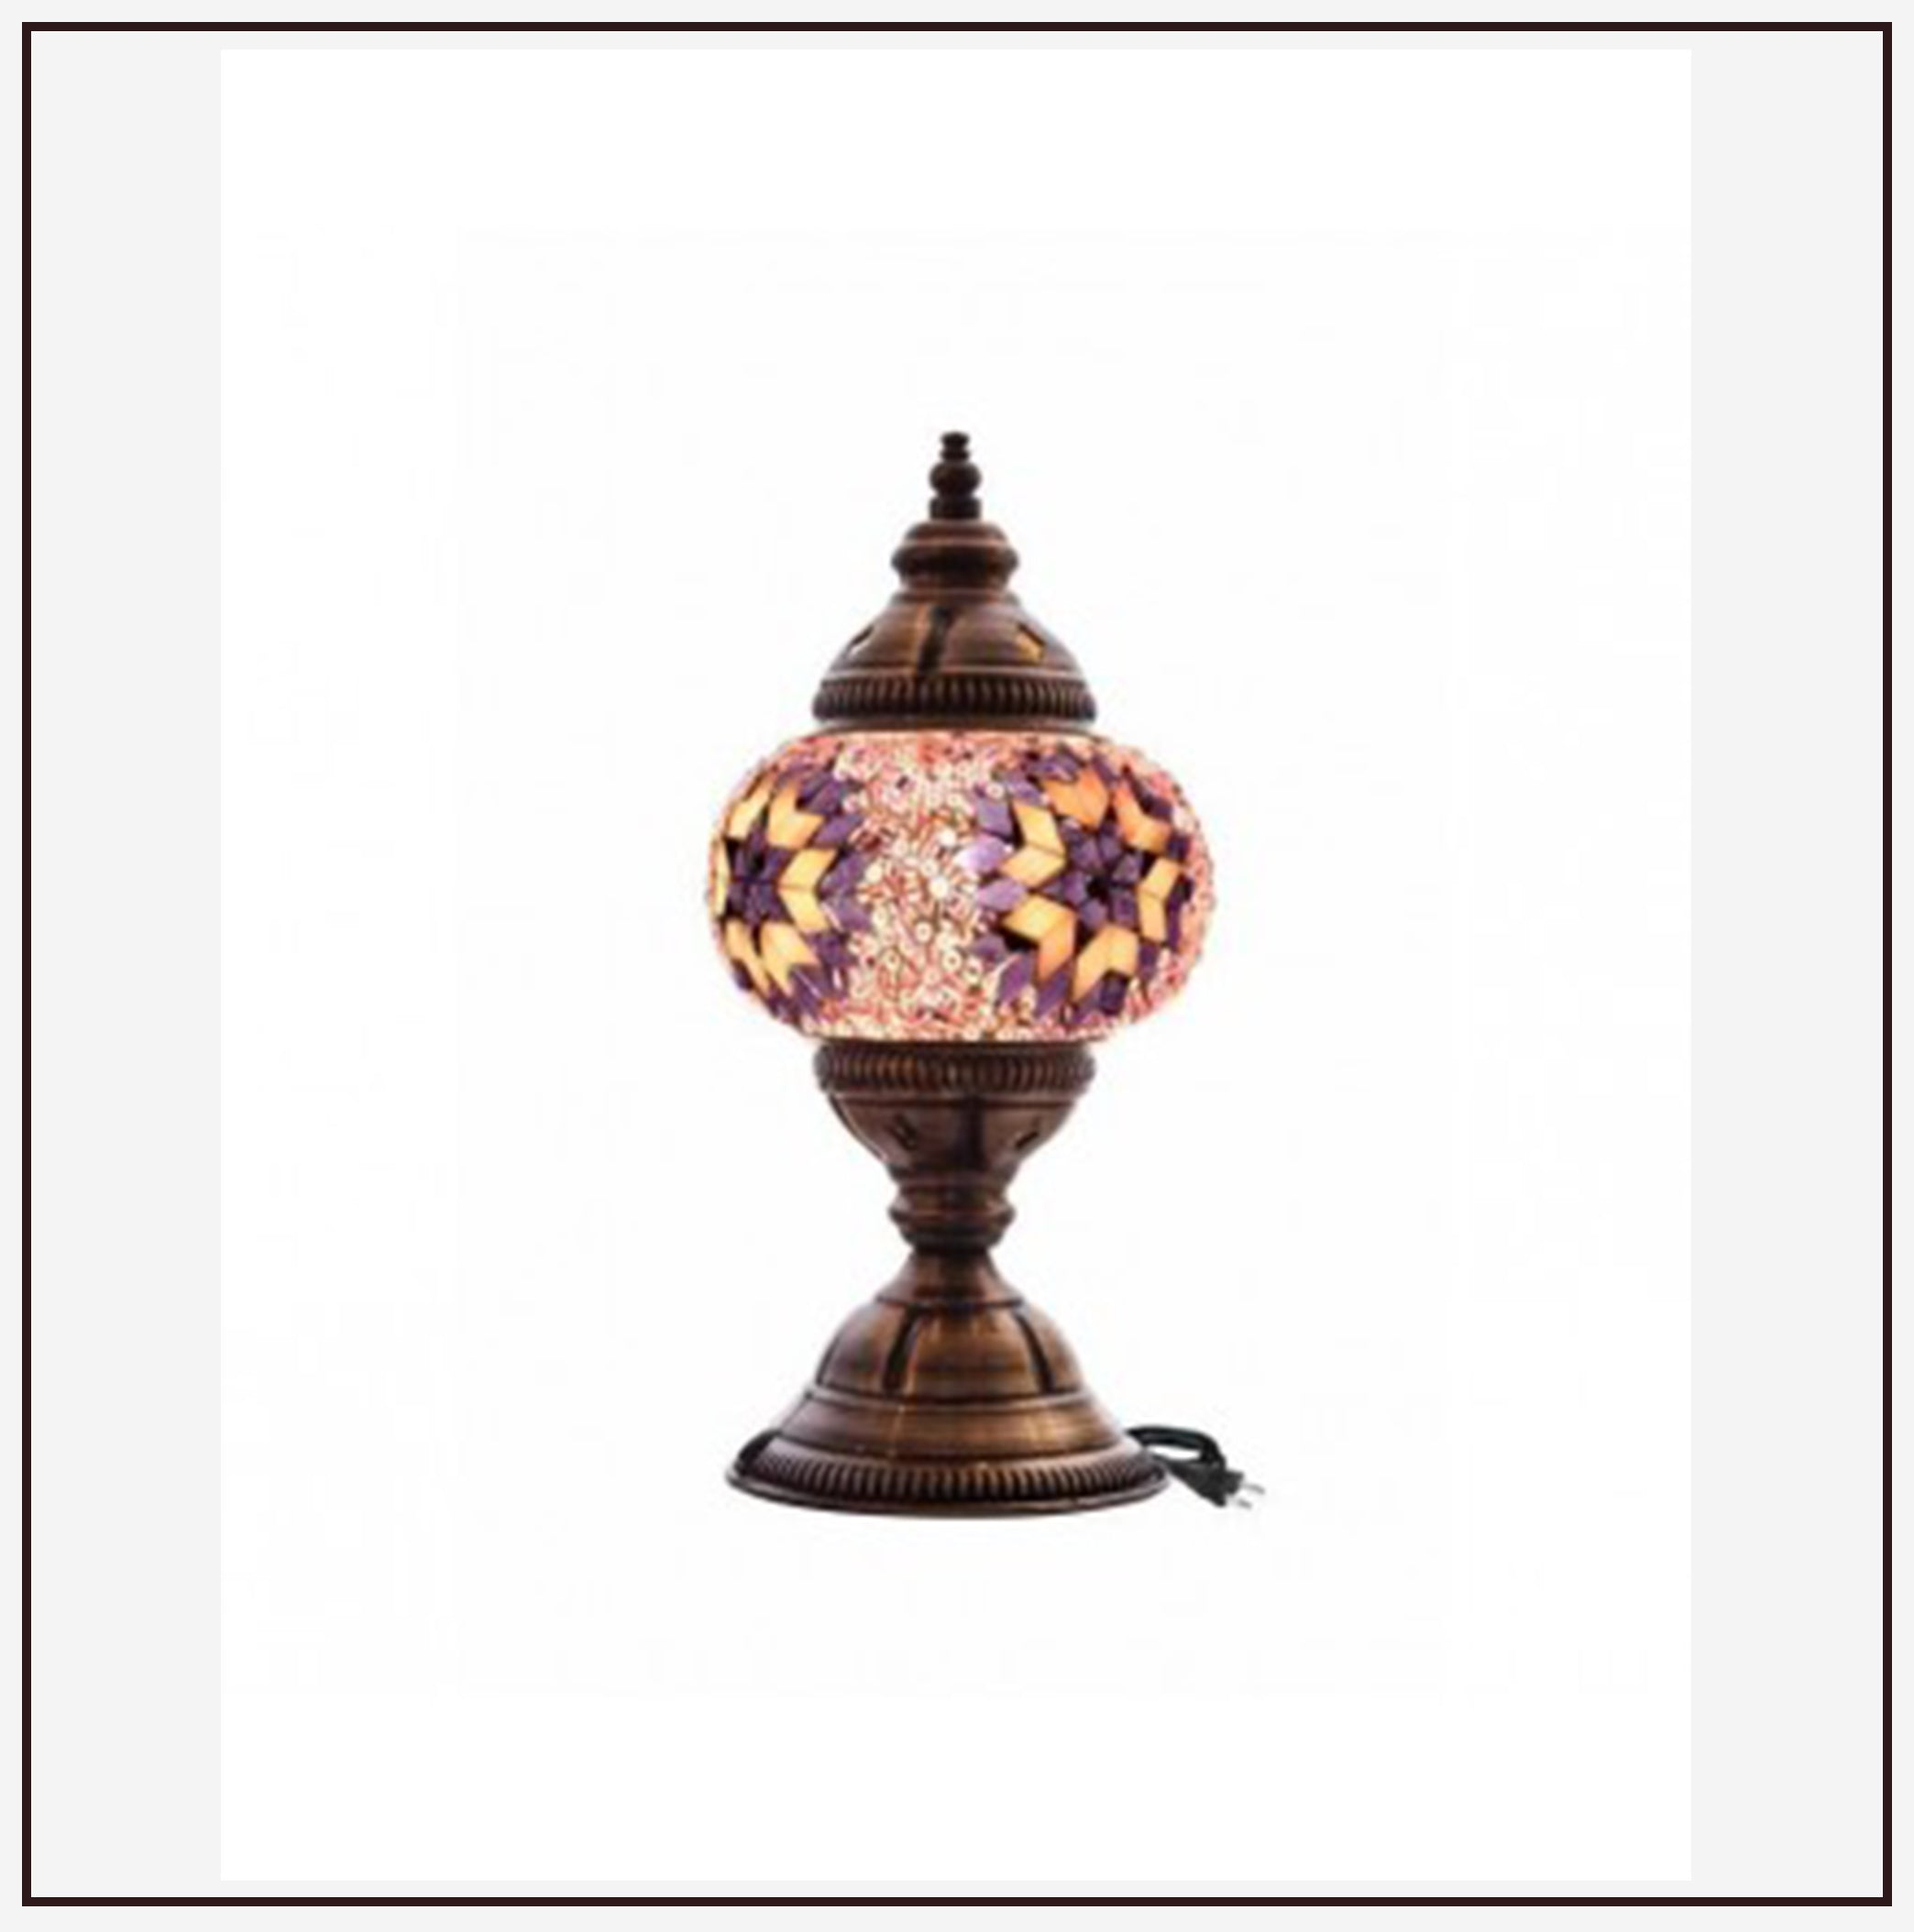 Turkish Table Lamp w/ Mosaic Glass Ball (10cm)